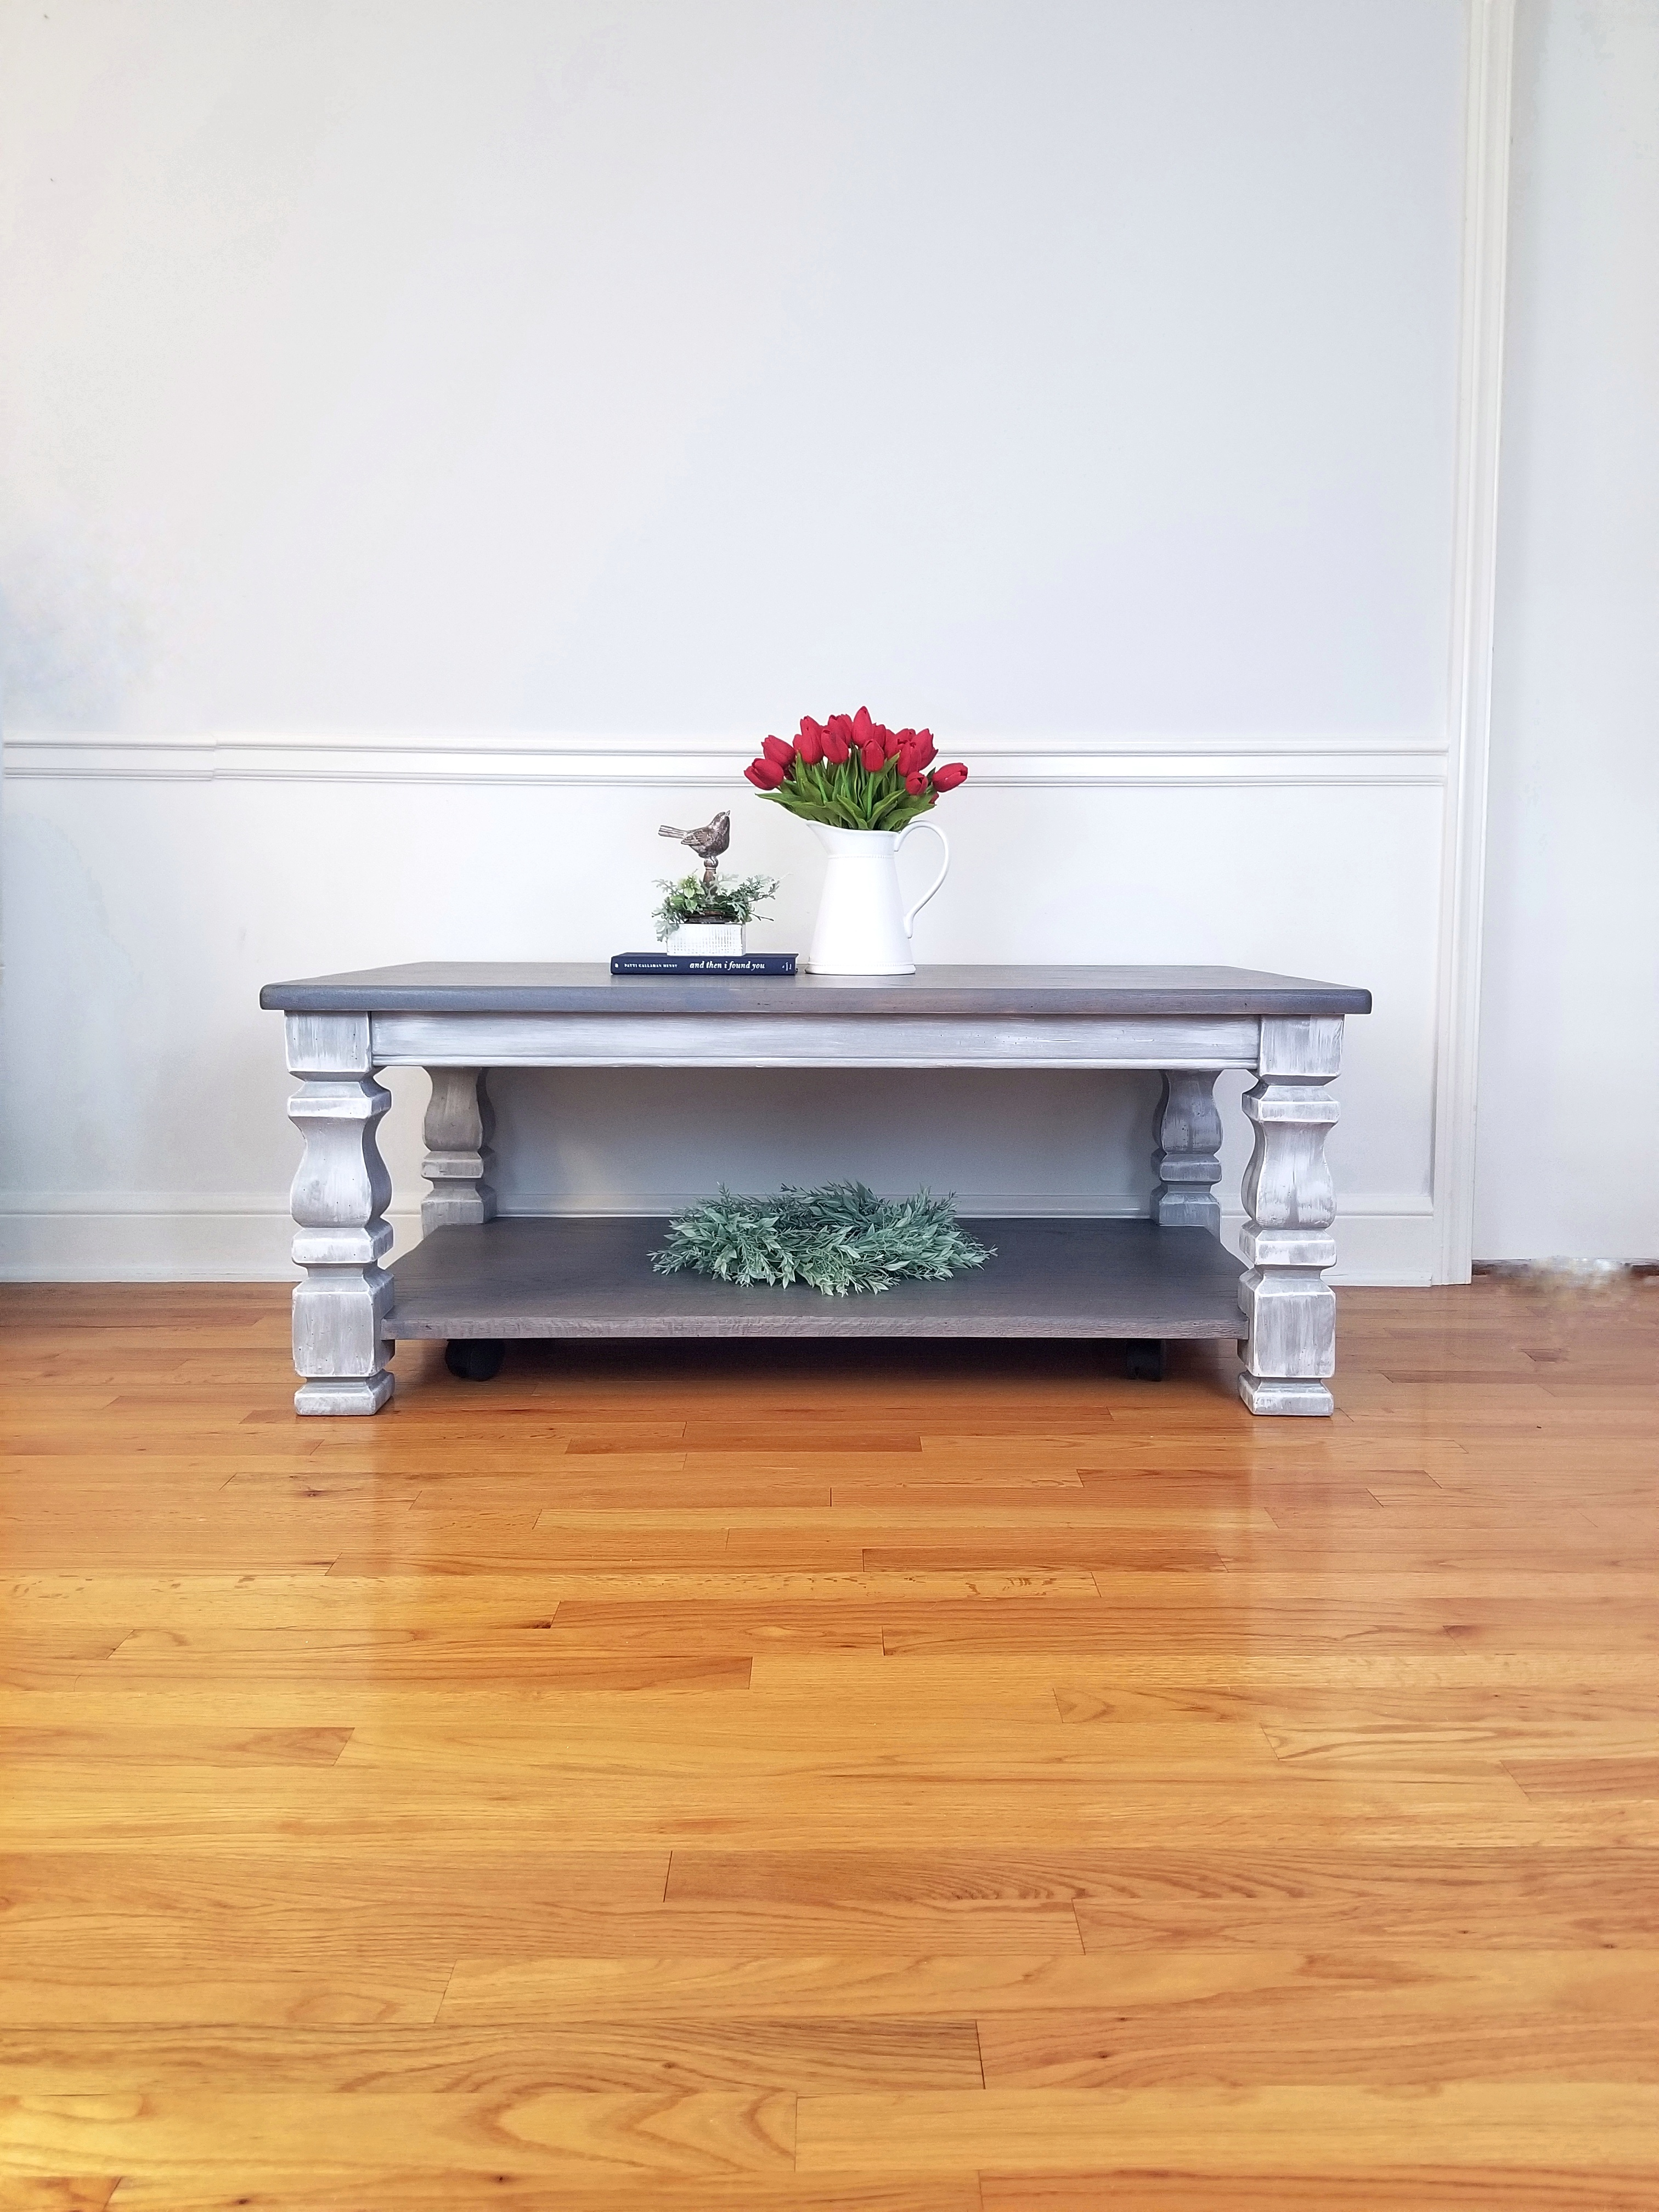 Oak Coffee Table - Weathered Gray Stain.